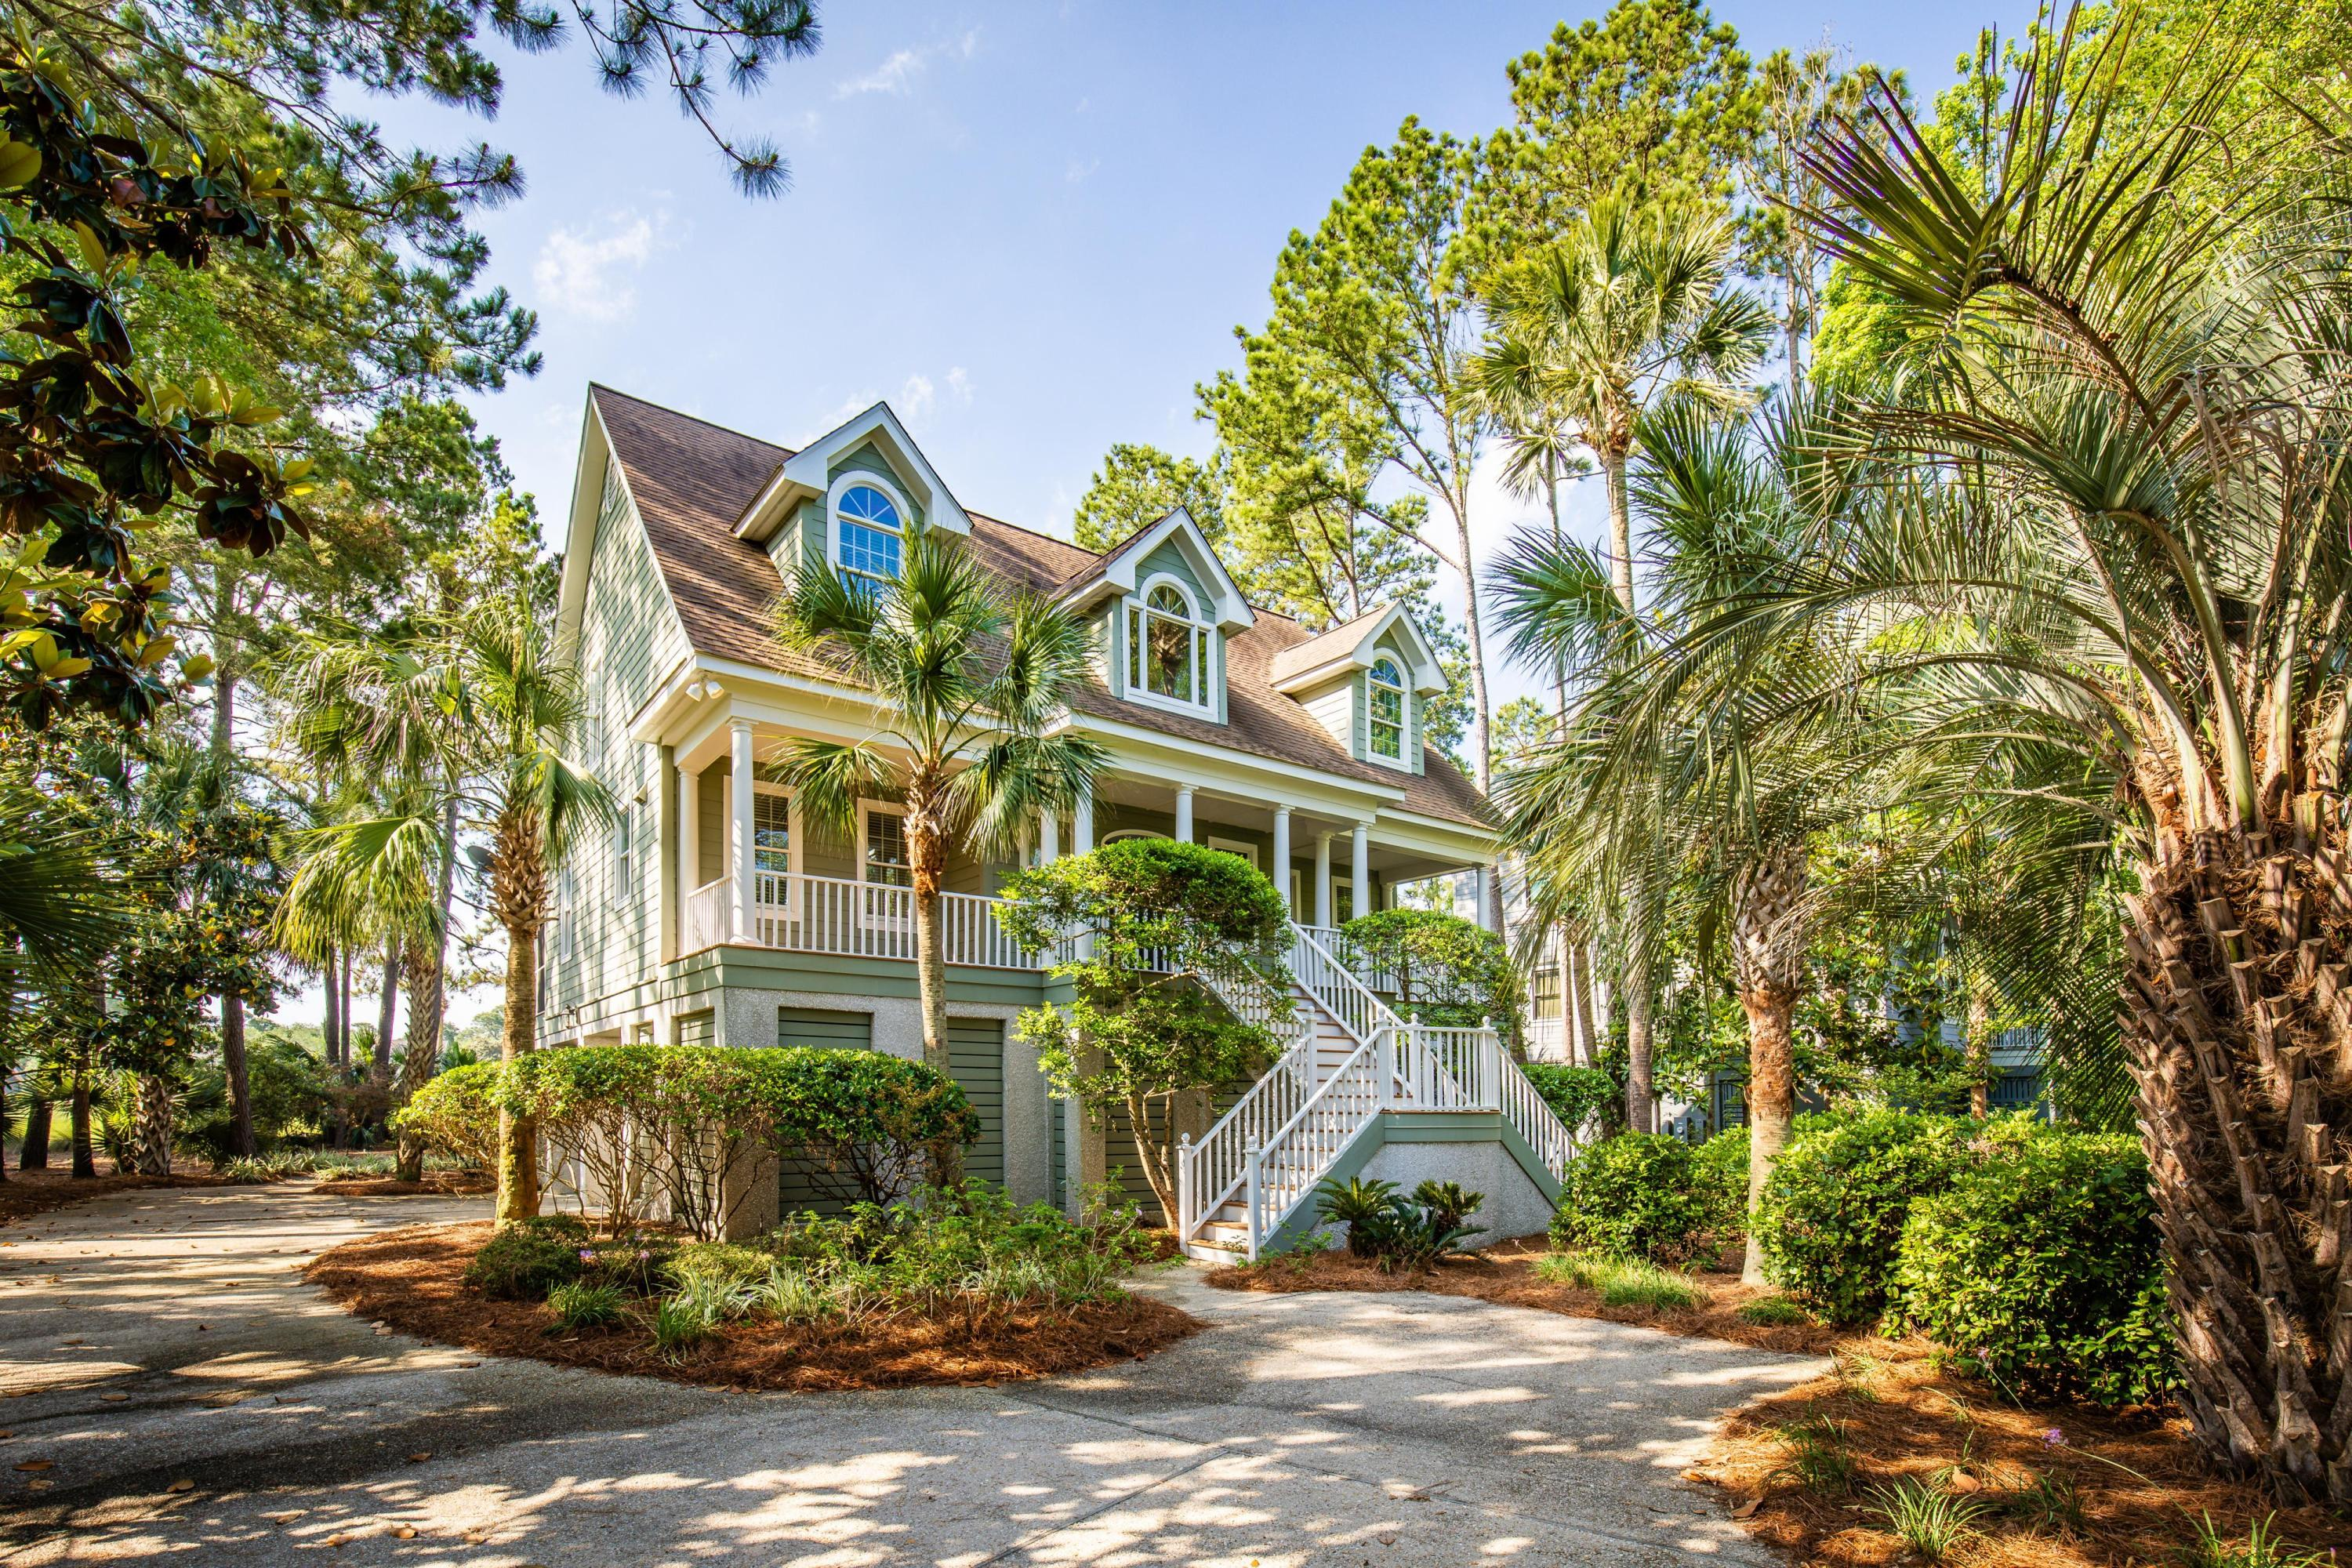 Kiawah Island Homes For Sale - 746 Glossy Ibis, Kiawah Island, SC - 41